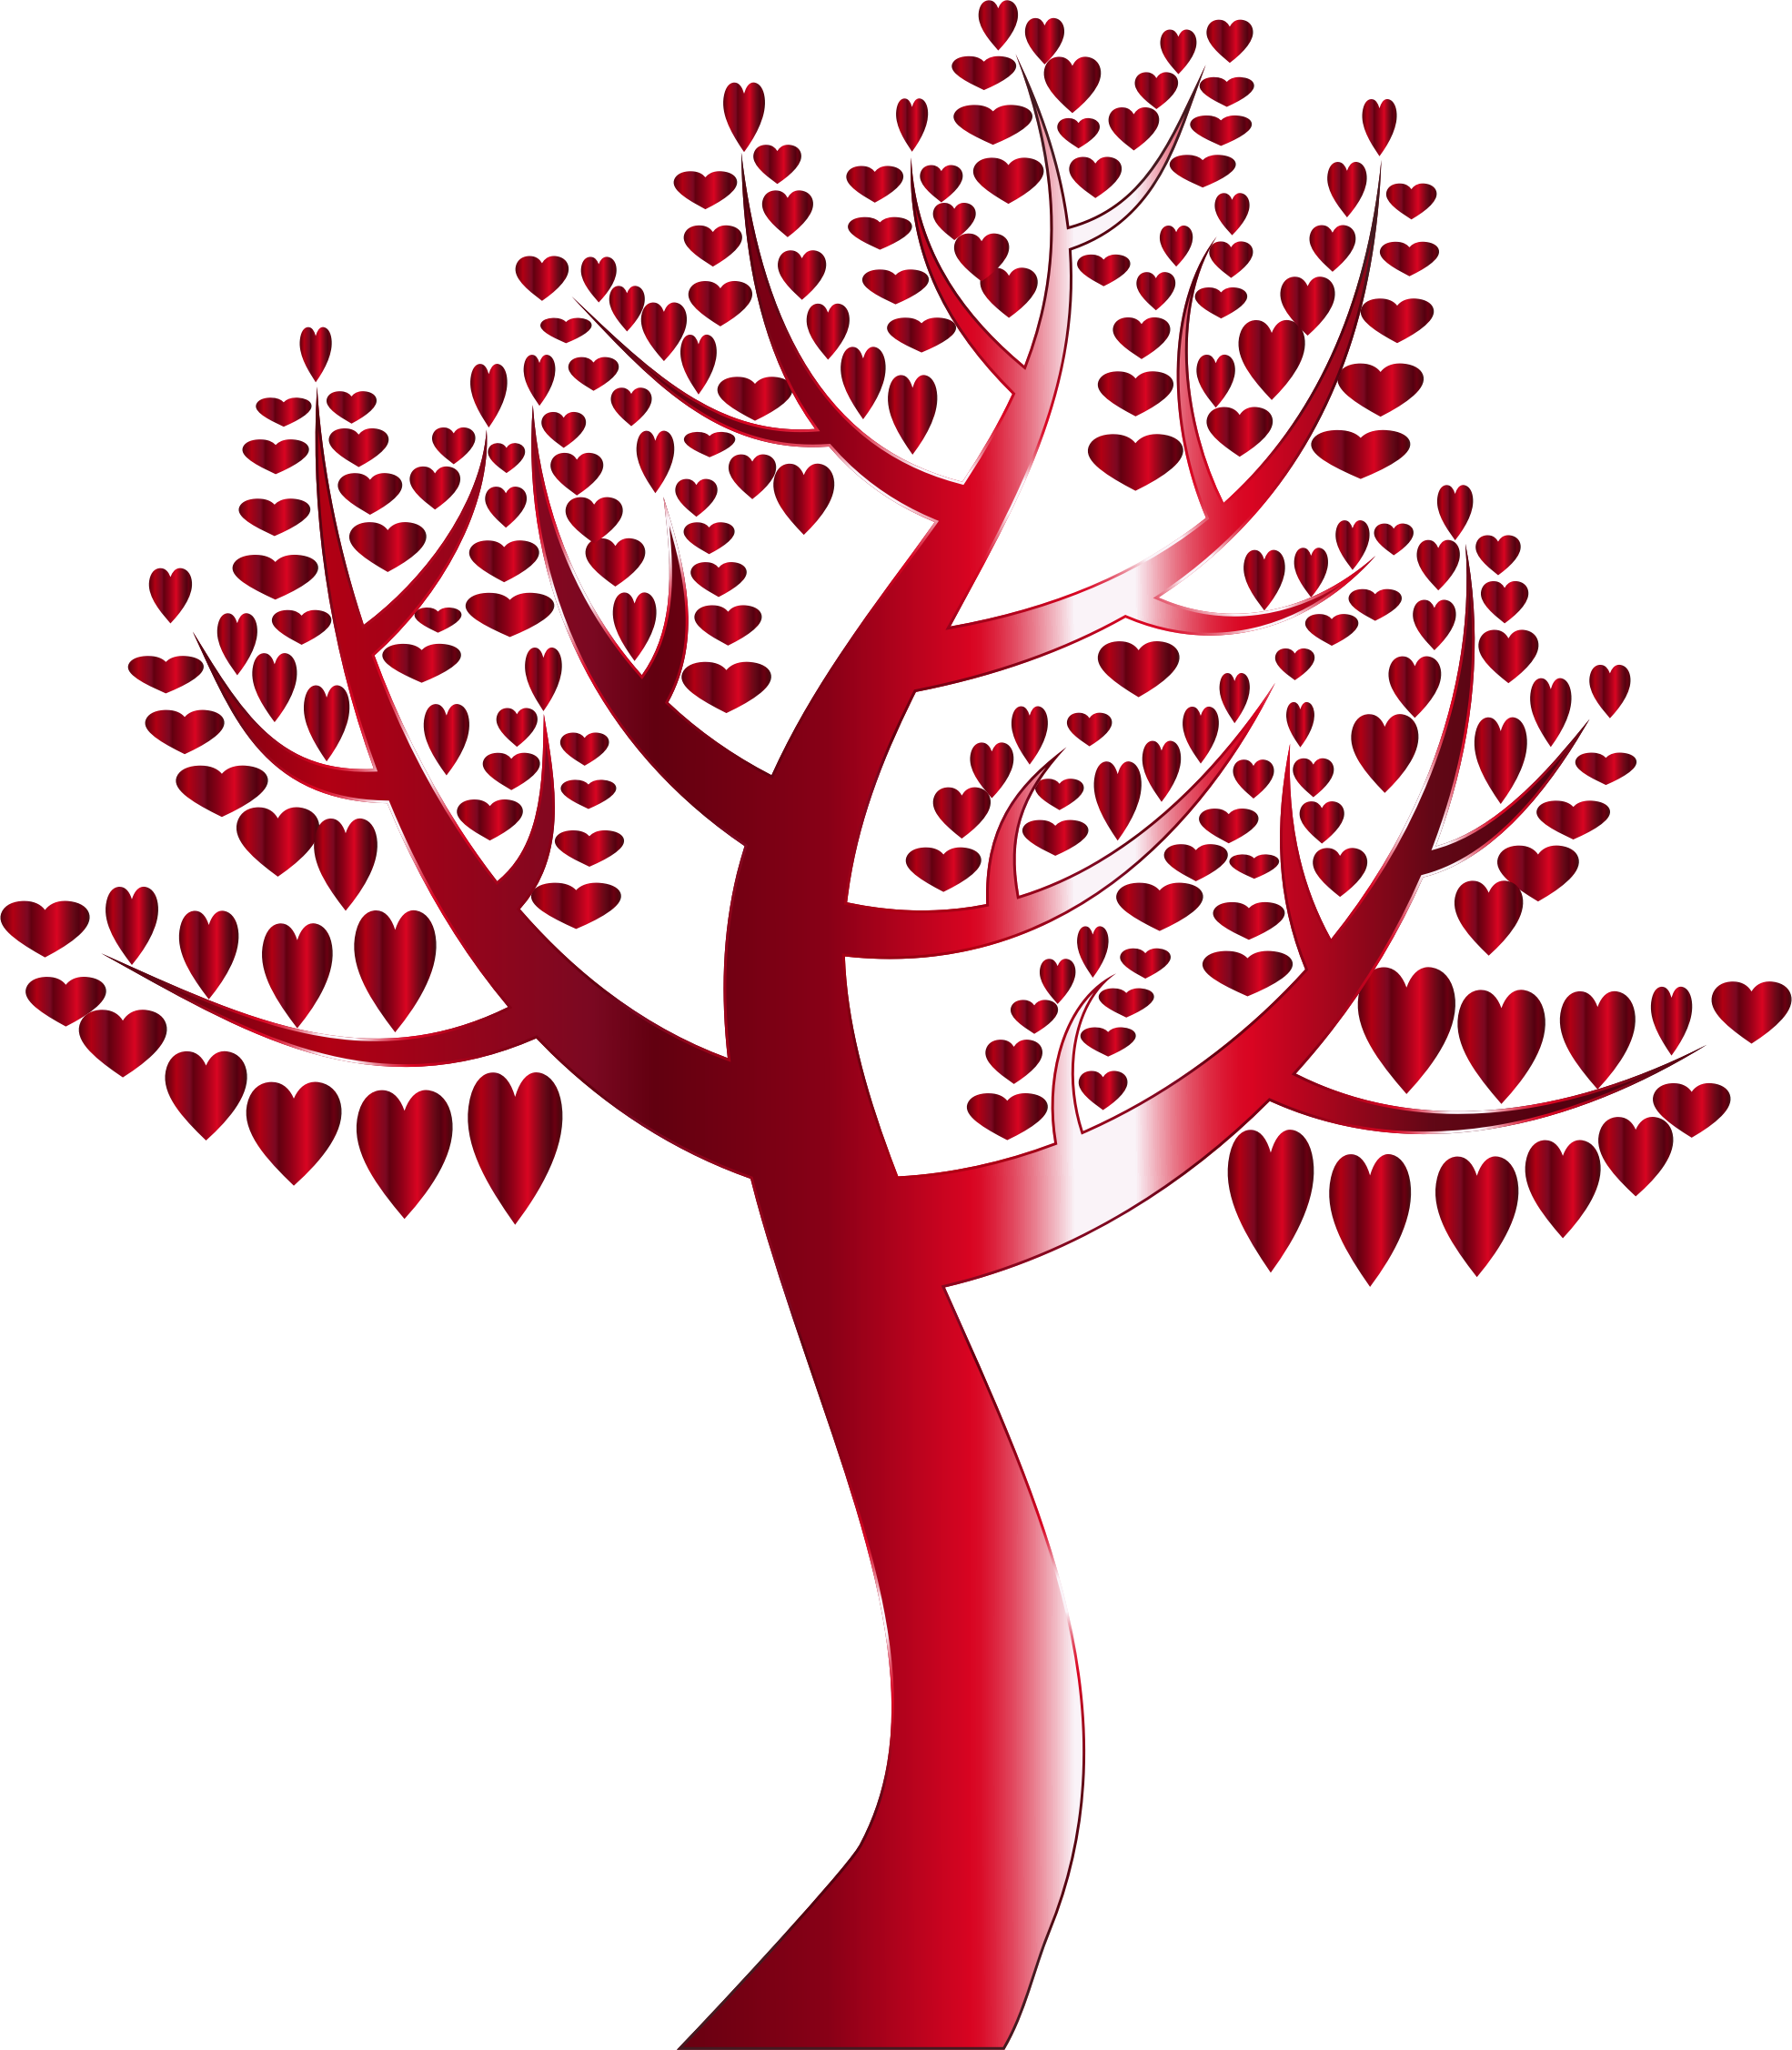 Tree clipart family reunion. Simple hearts no background